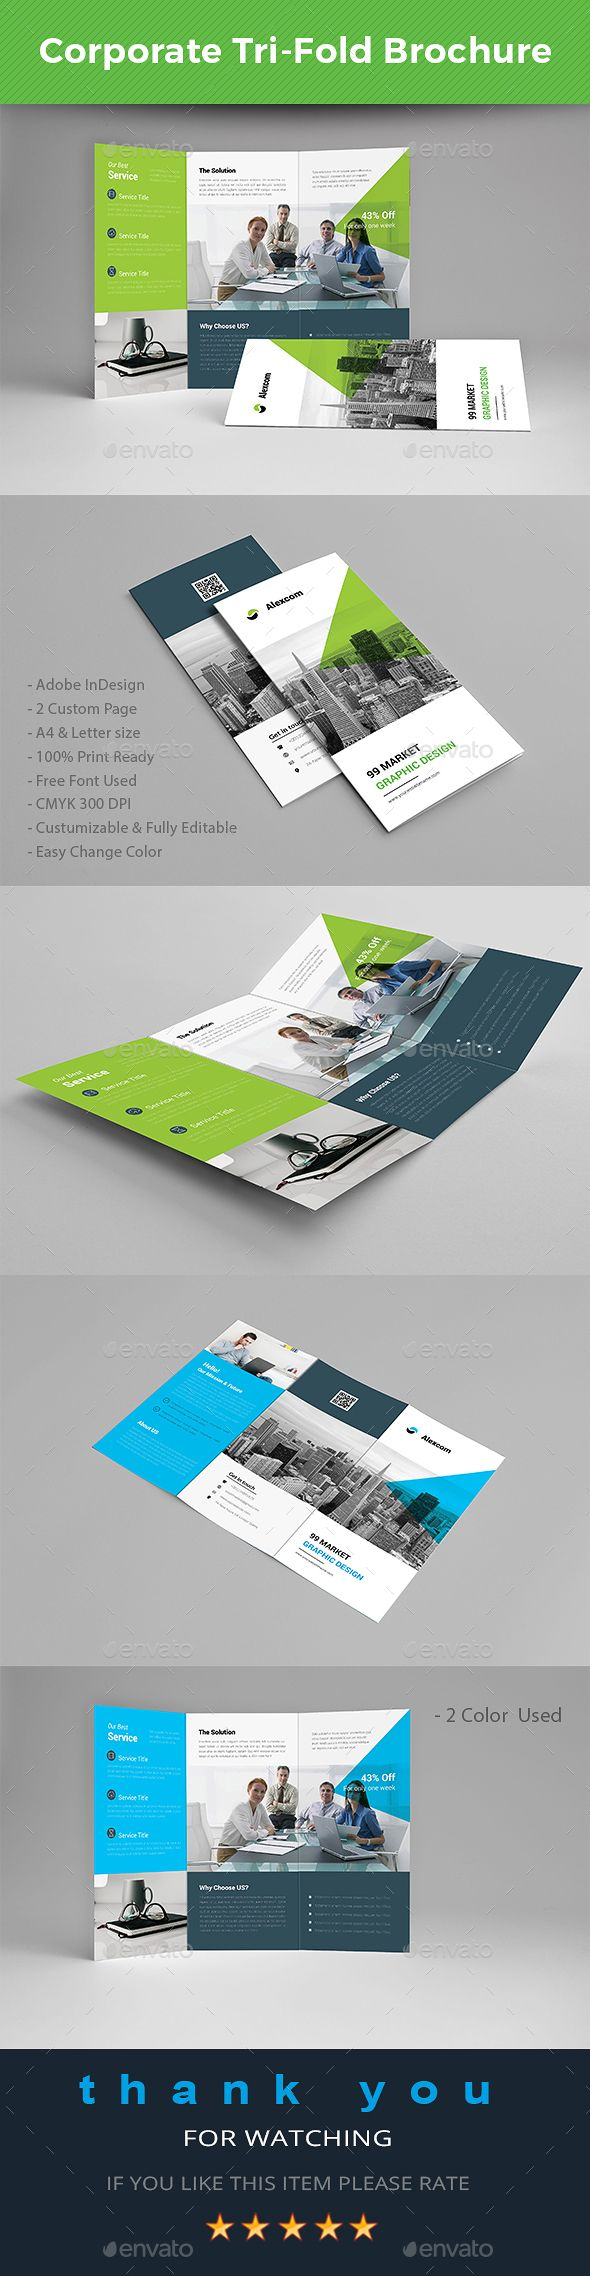 Trifold Brochure   #3 fold, #a4, #agency, #blue, #branding, #brochure, #brochure template, #business, #clean, #colorful design, #corporate, #custom design, #elegant, #flexible, #illustrator, #indesign, #marketing, #multi colors, #multi use, #multipurpose, #photoshop, #print, #print ready, #print template, #psd, #tri fold brochure, #tri-fold, #trifold